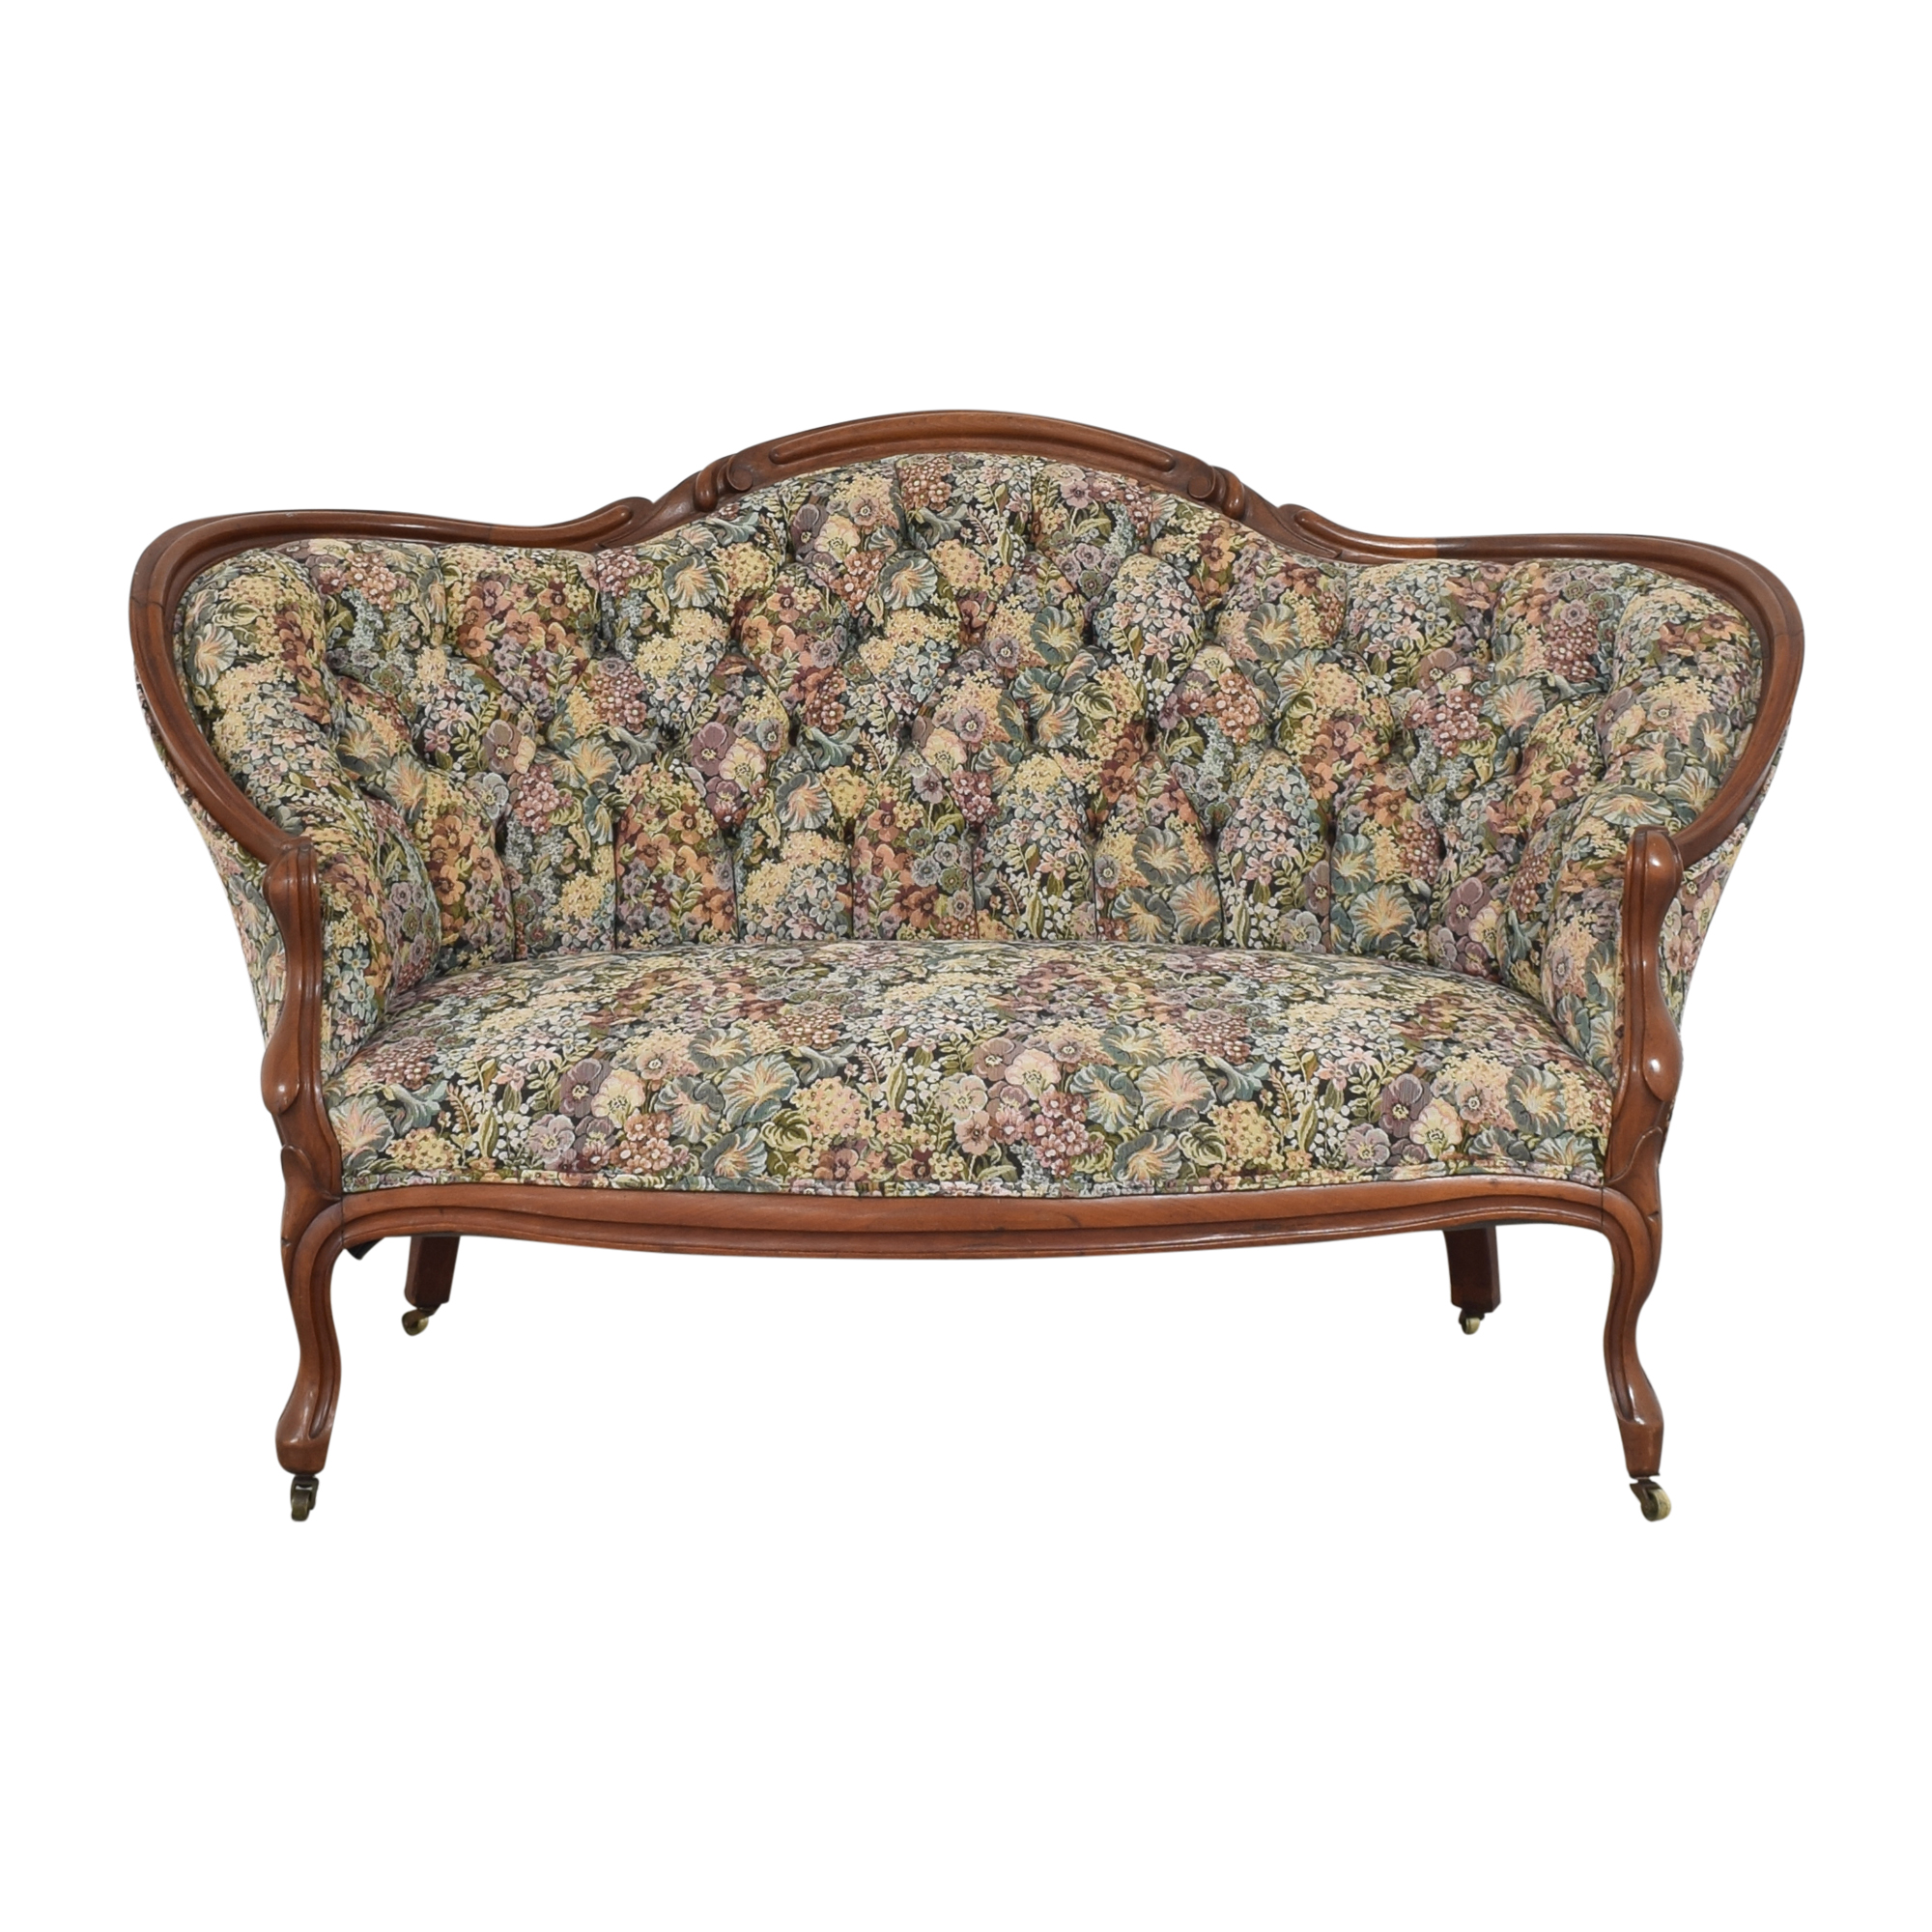 Vintage Floral Tufted Settee second hand